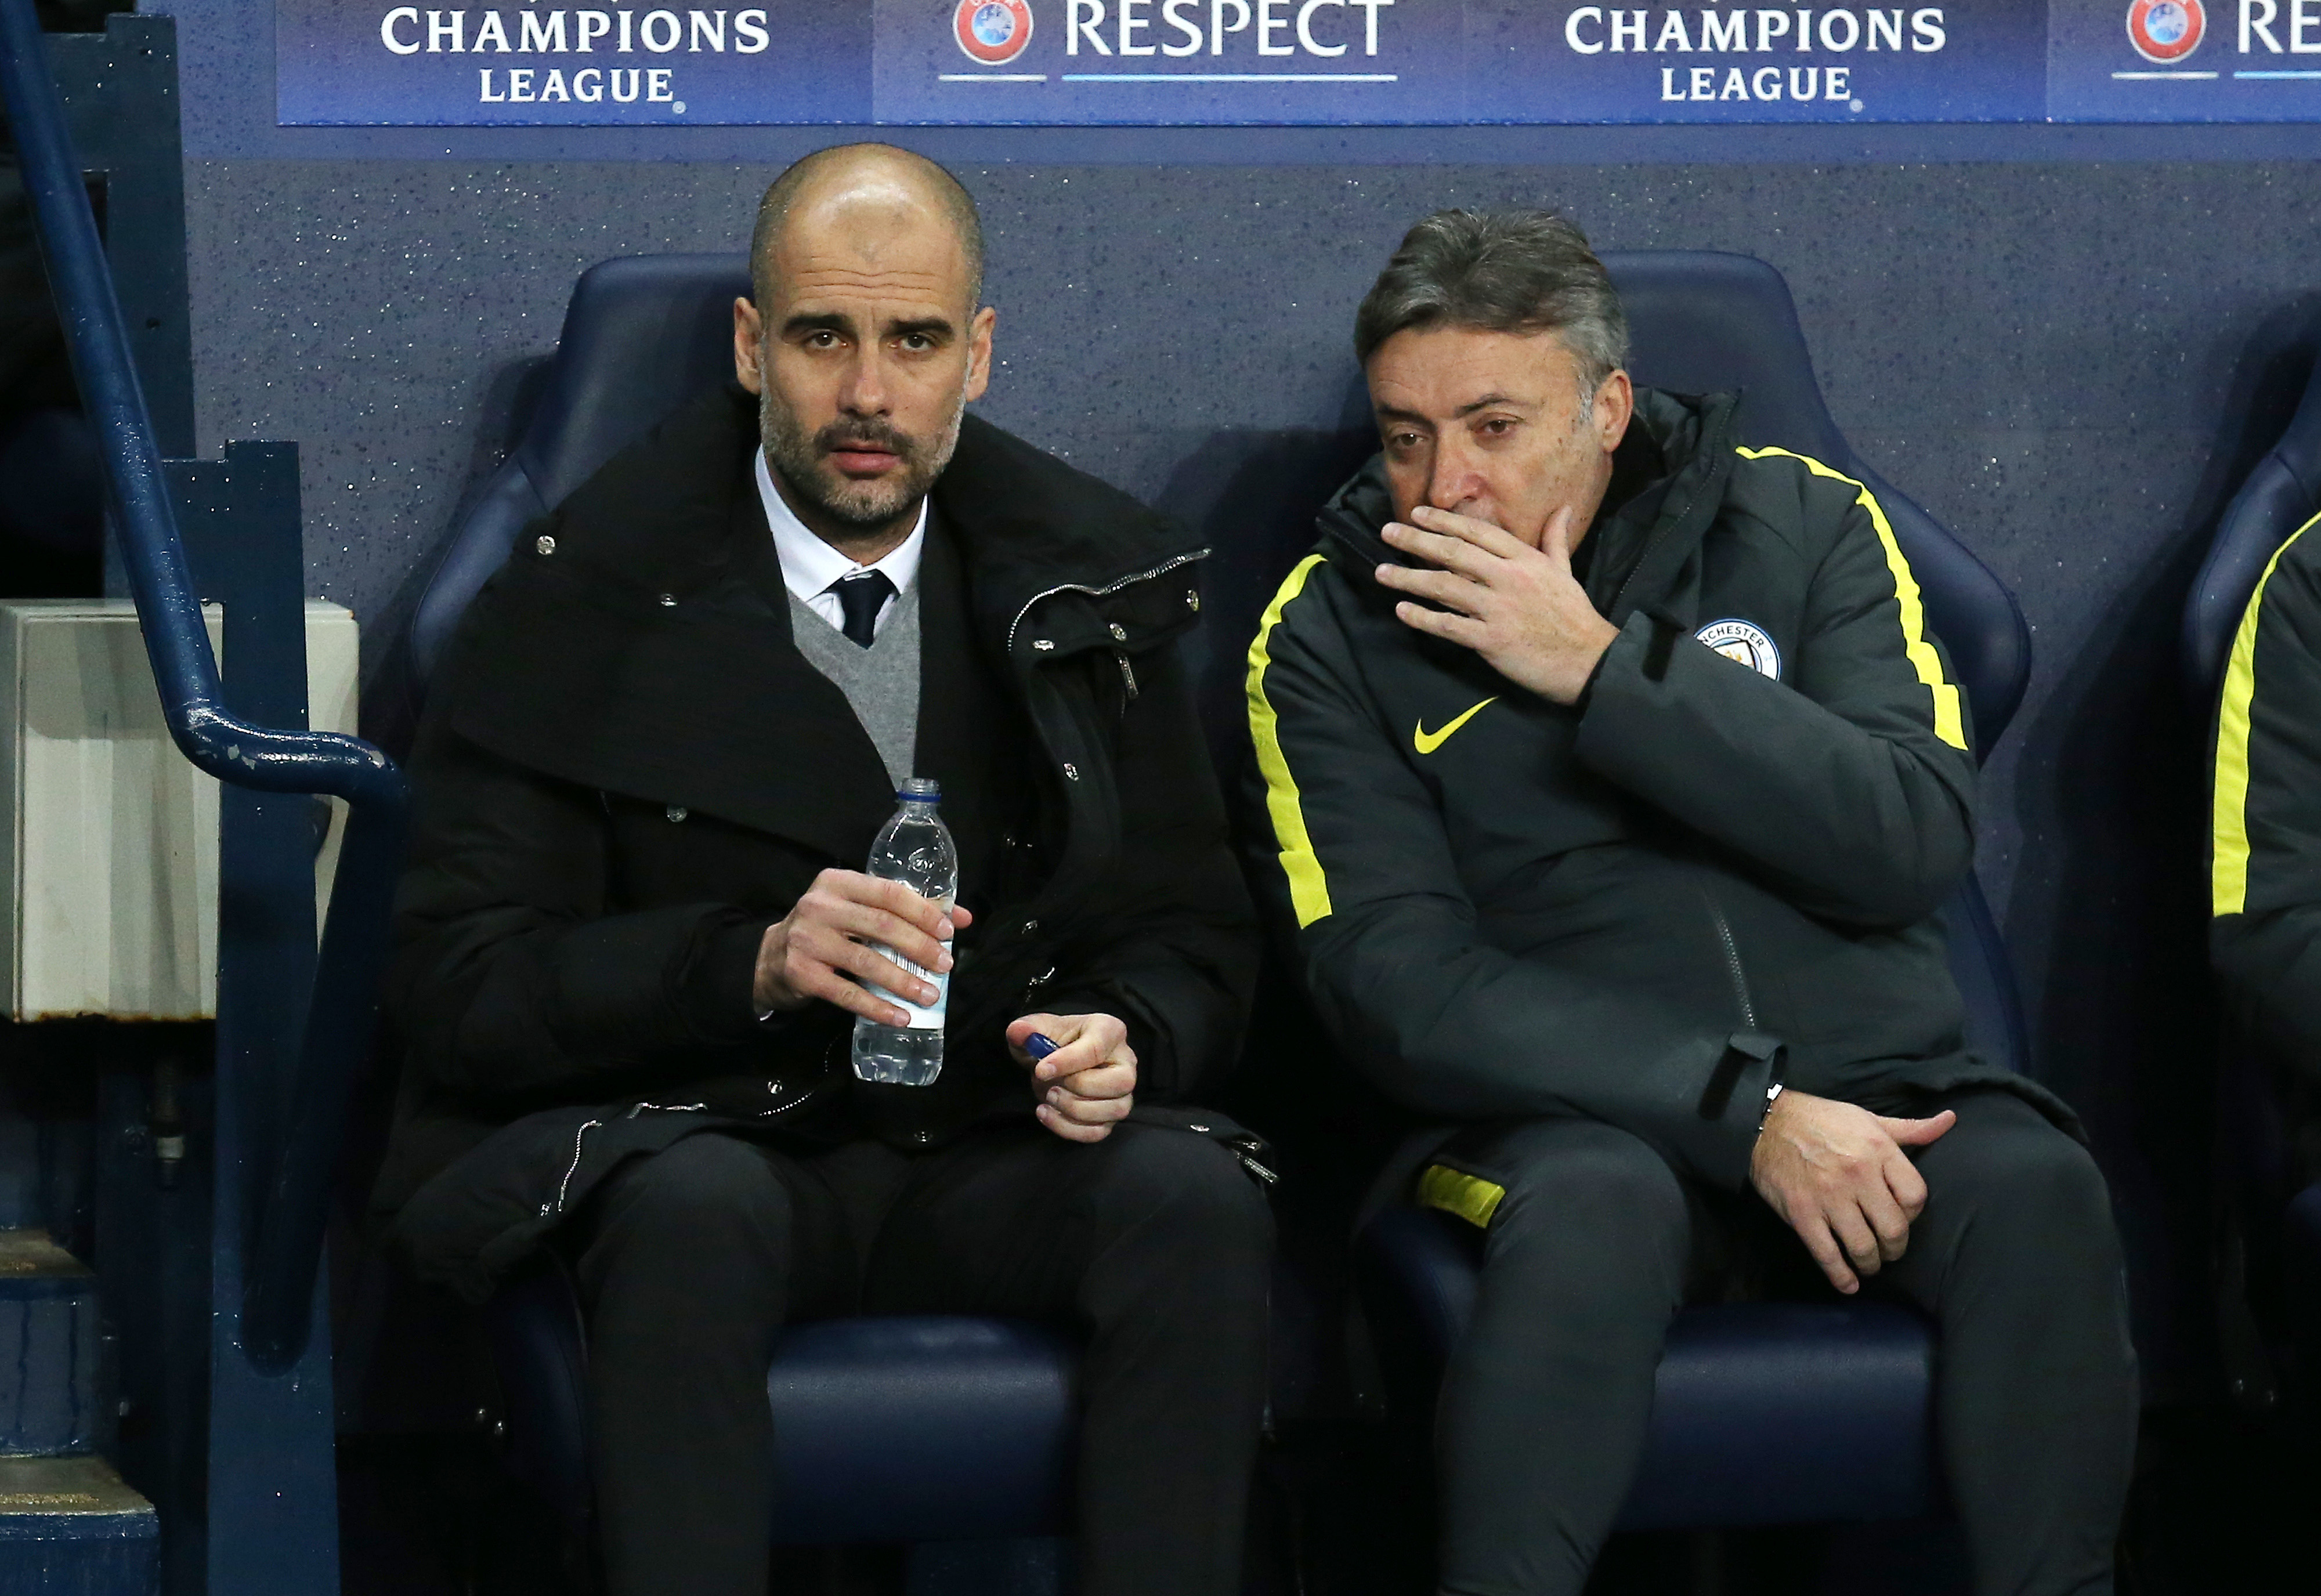 644993170-manchester-city-fc-v-as-monaco-uefa-champions-league-round-of-16-first-leg.jpg